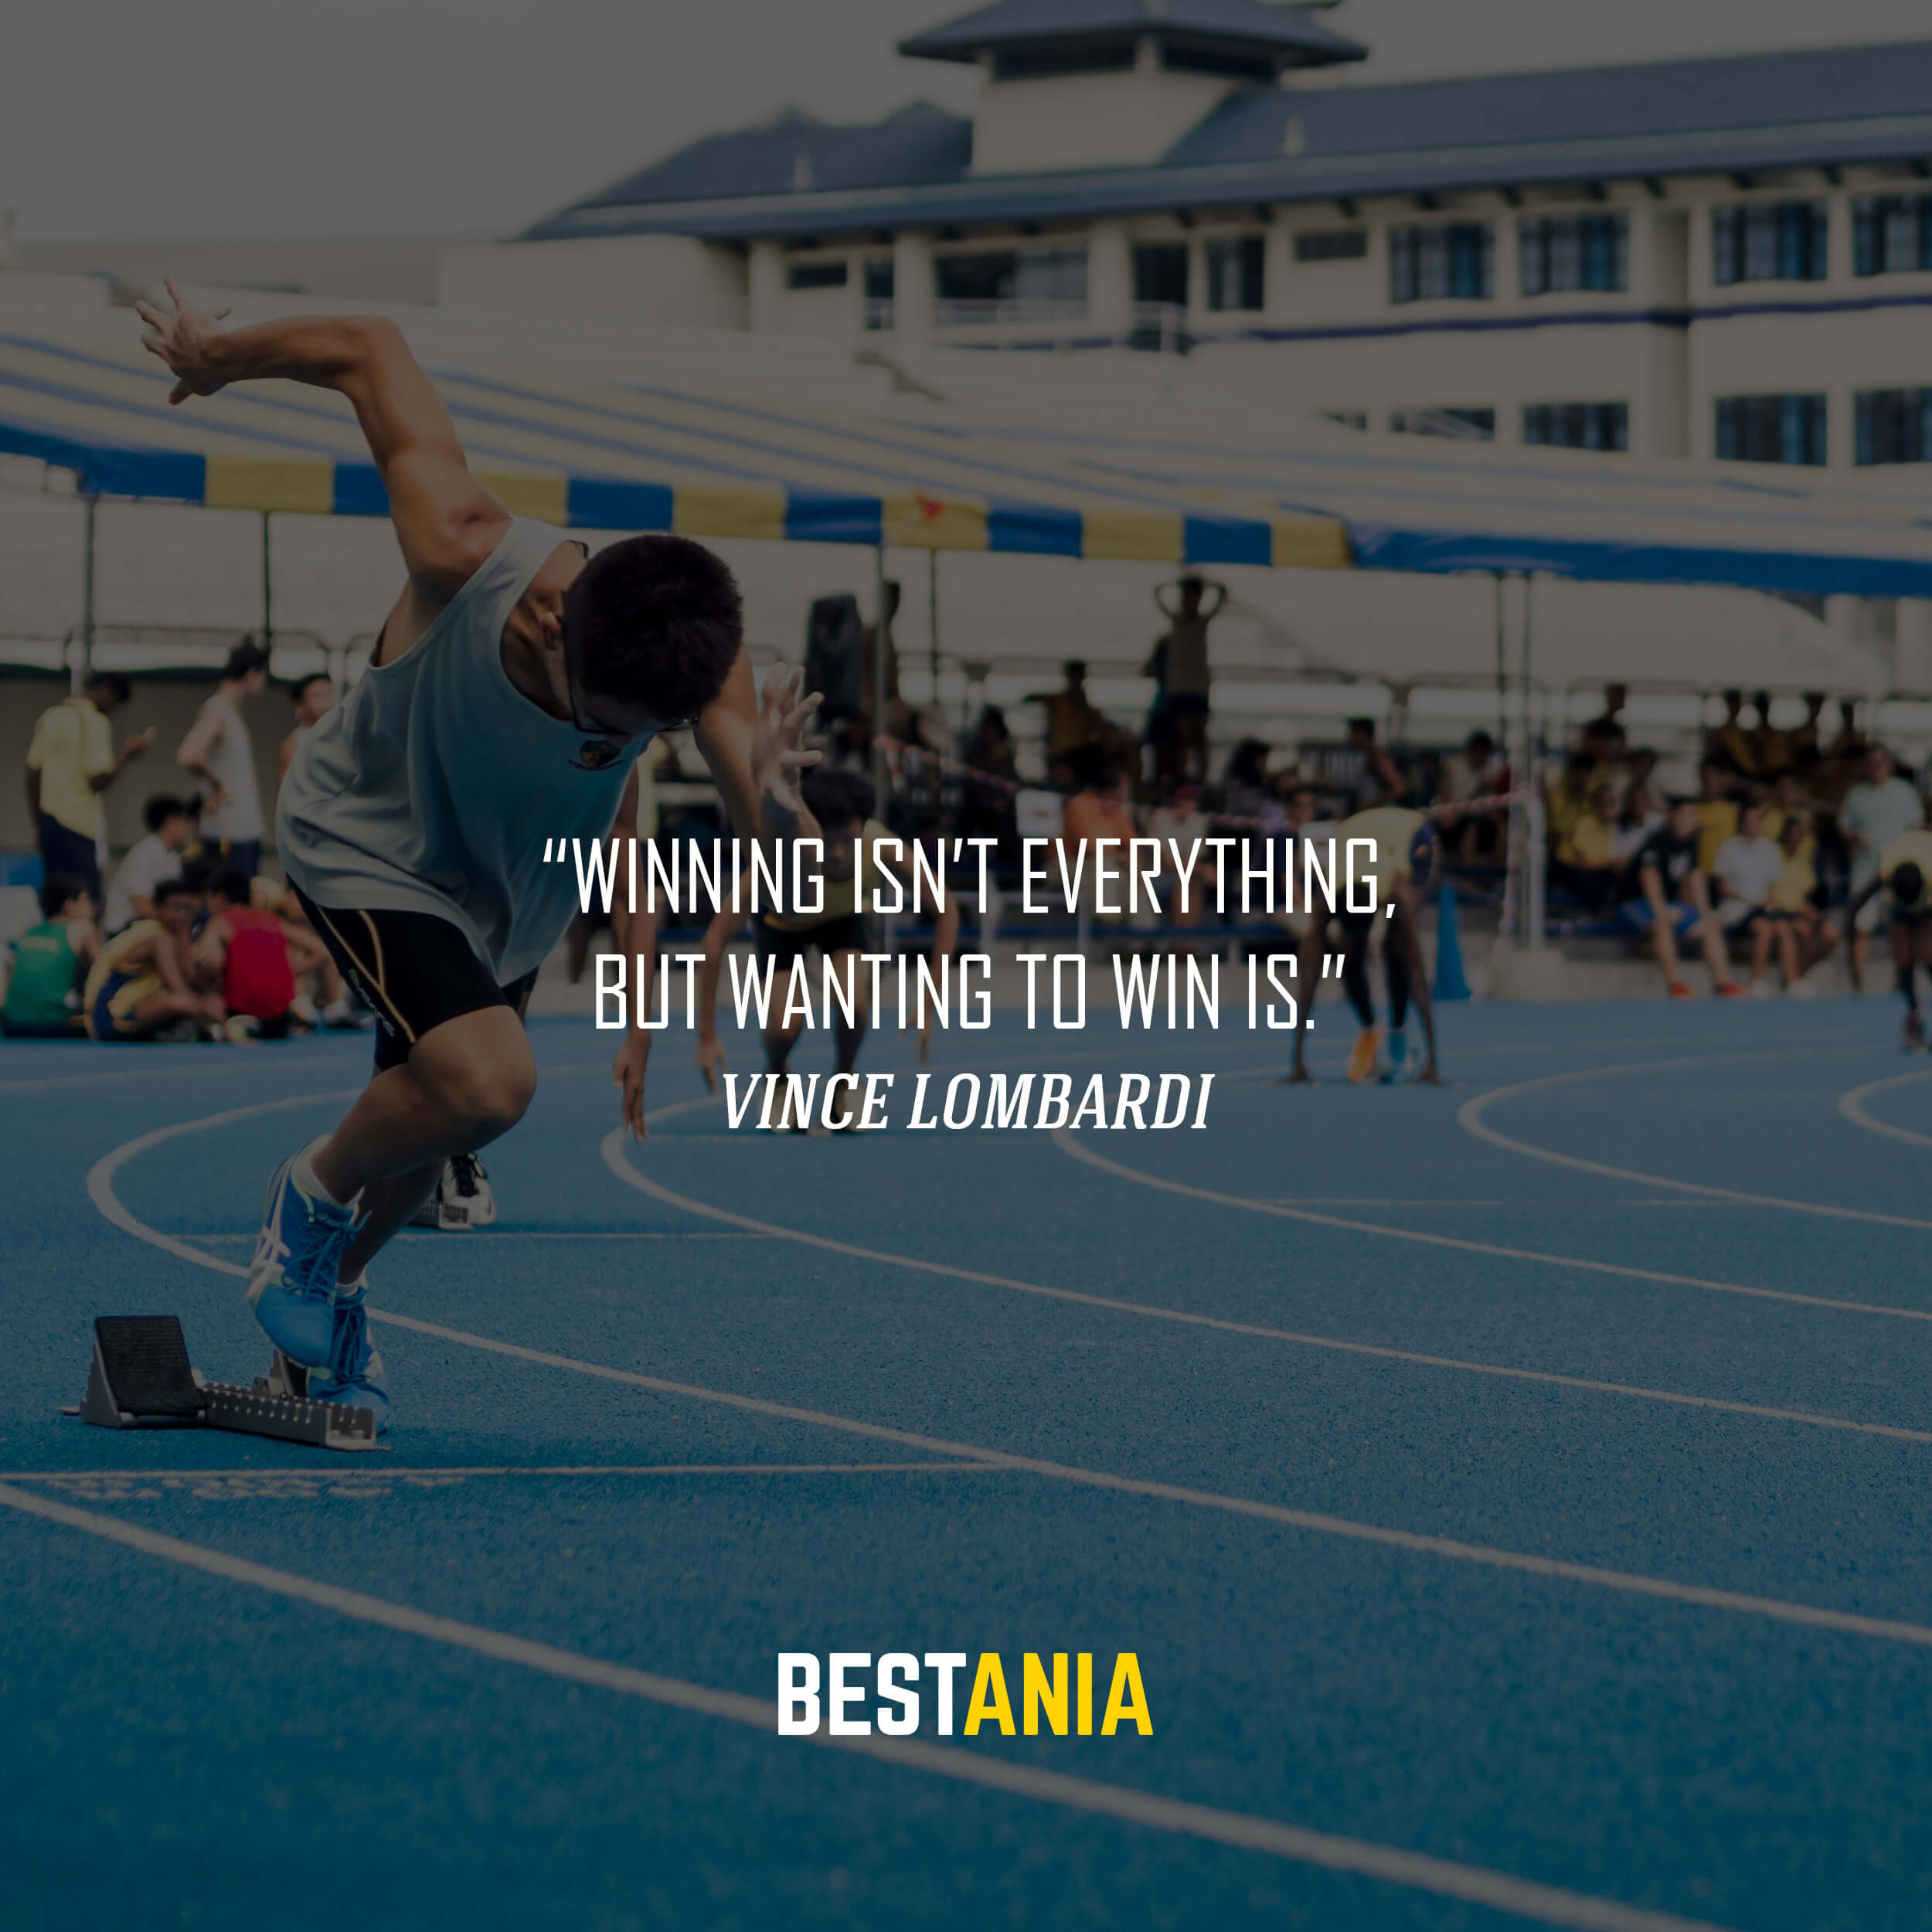 """Winning isn't everything, but wanting to win is."" – Vince Lombardi"